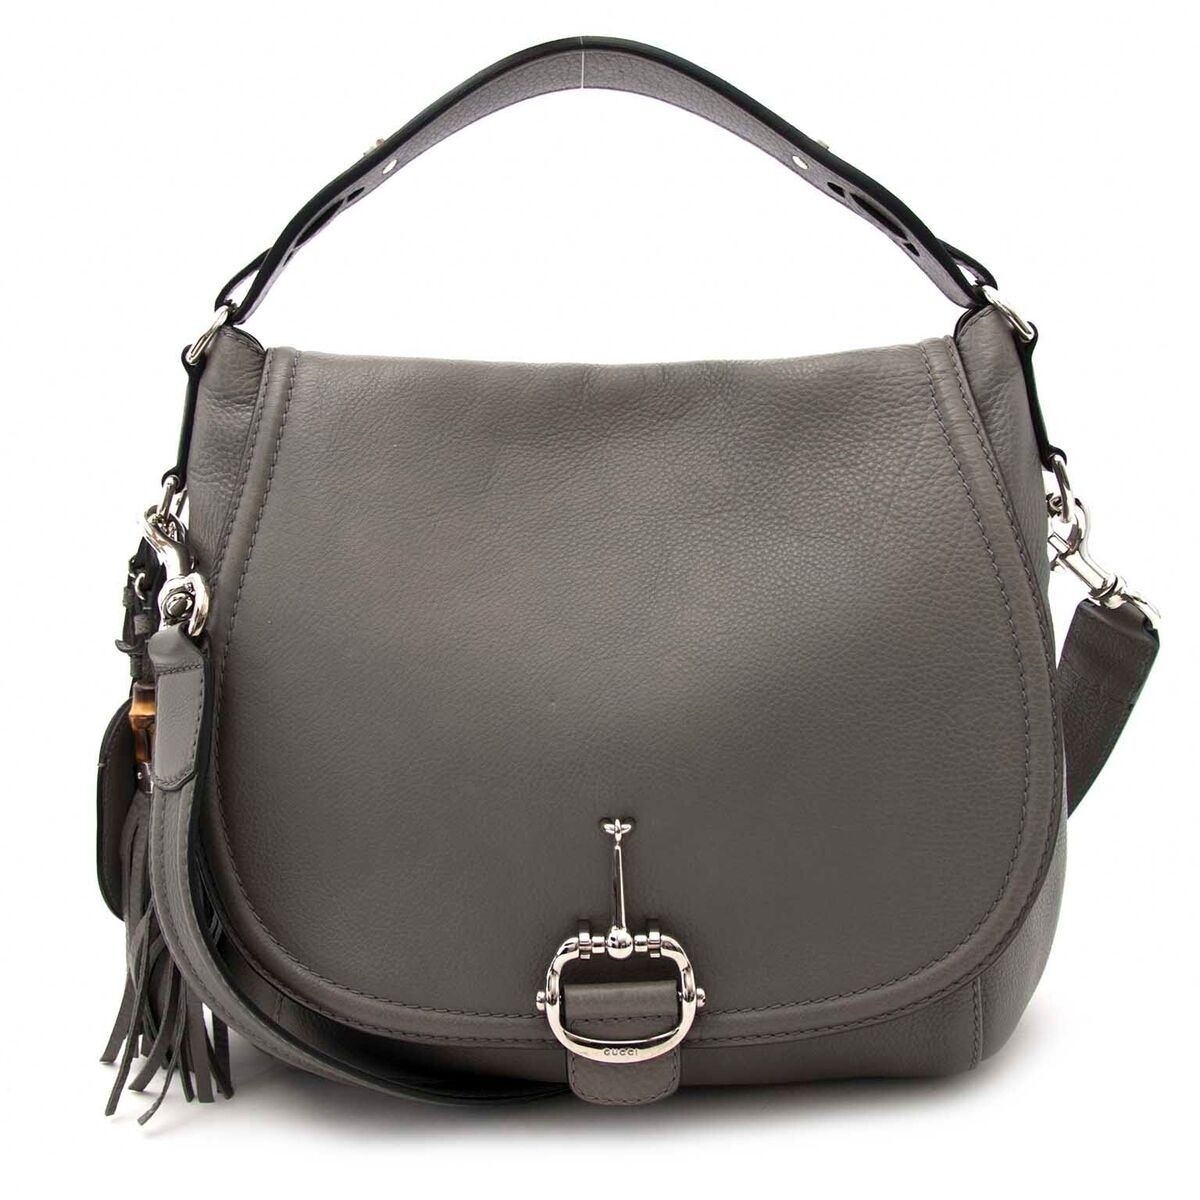 3a744529c072 Labellov gucci light grey shoulder bag buy and sell authentic luxury also  we lov rh pinterest